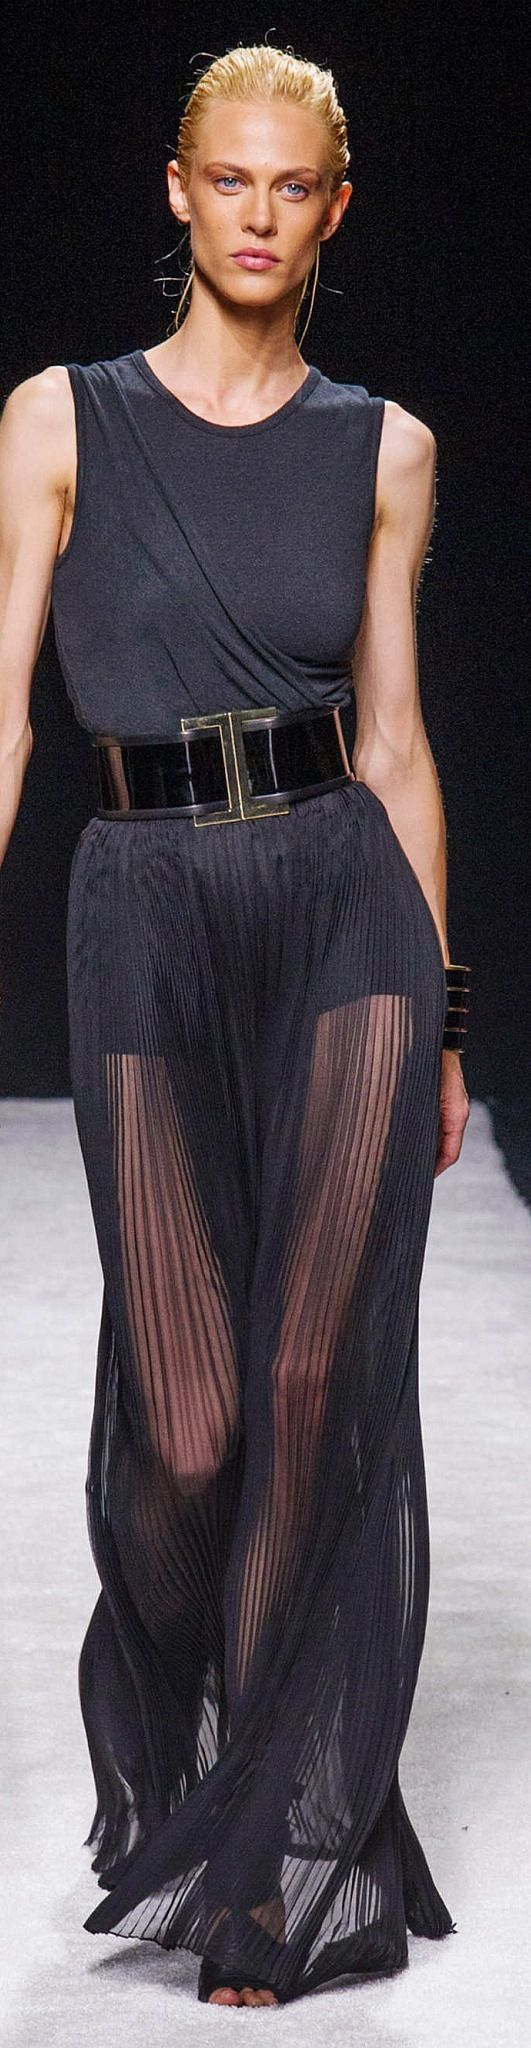 The top should either be TIGHTER or extremely draped. Being in-between the two looks sloppy.  Balmain Collection Spring 2015